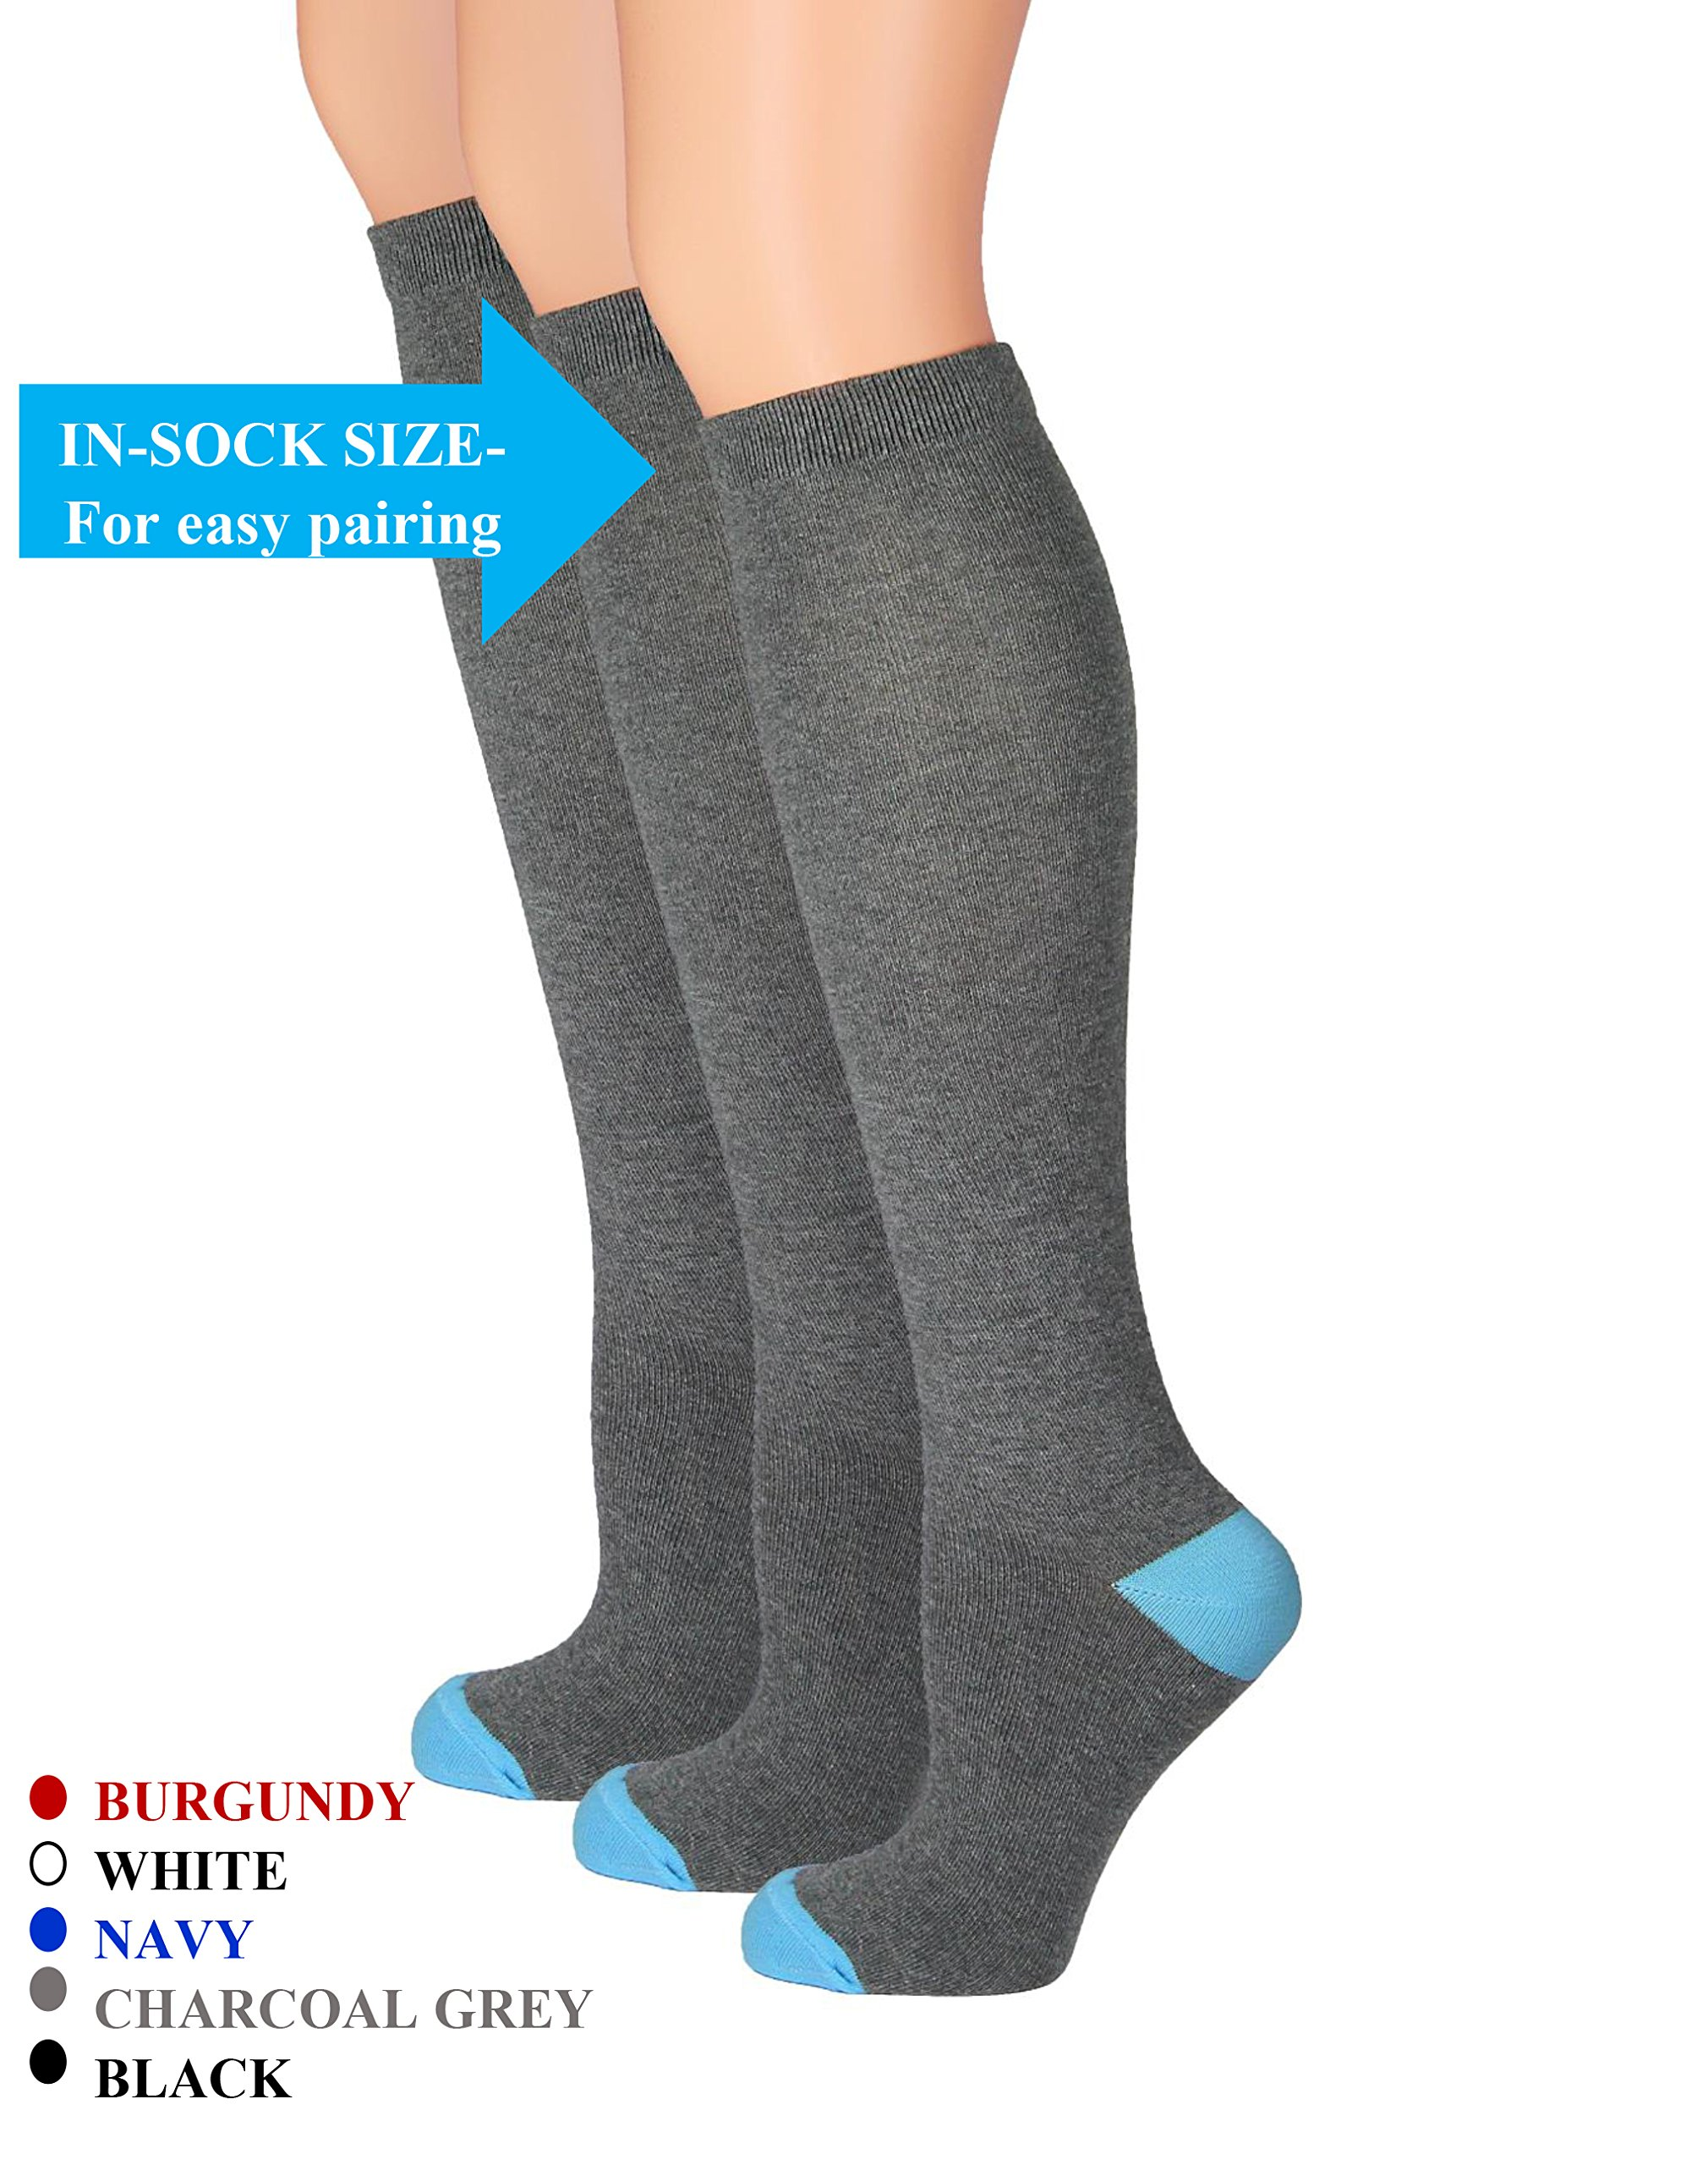 The Top Fit Womens Knee High Cotton Compression Solid Dress Socks 9-11, Charcoal Gray- 3 Pk